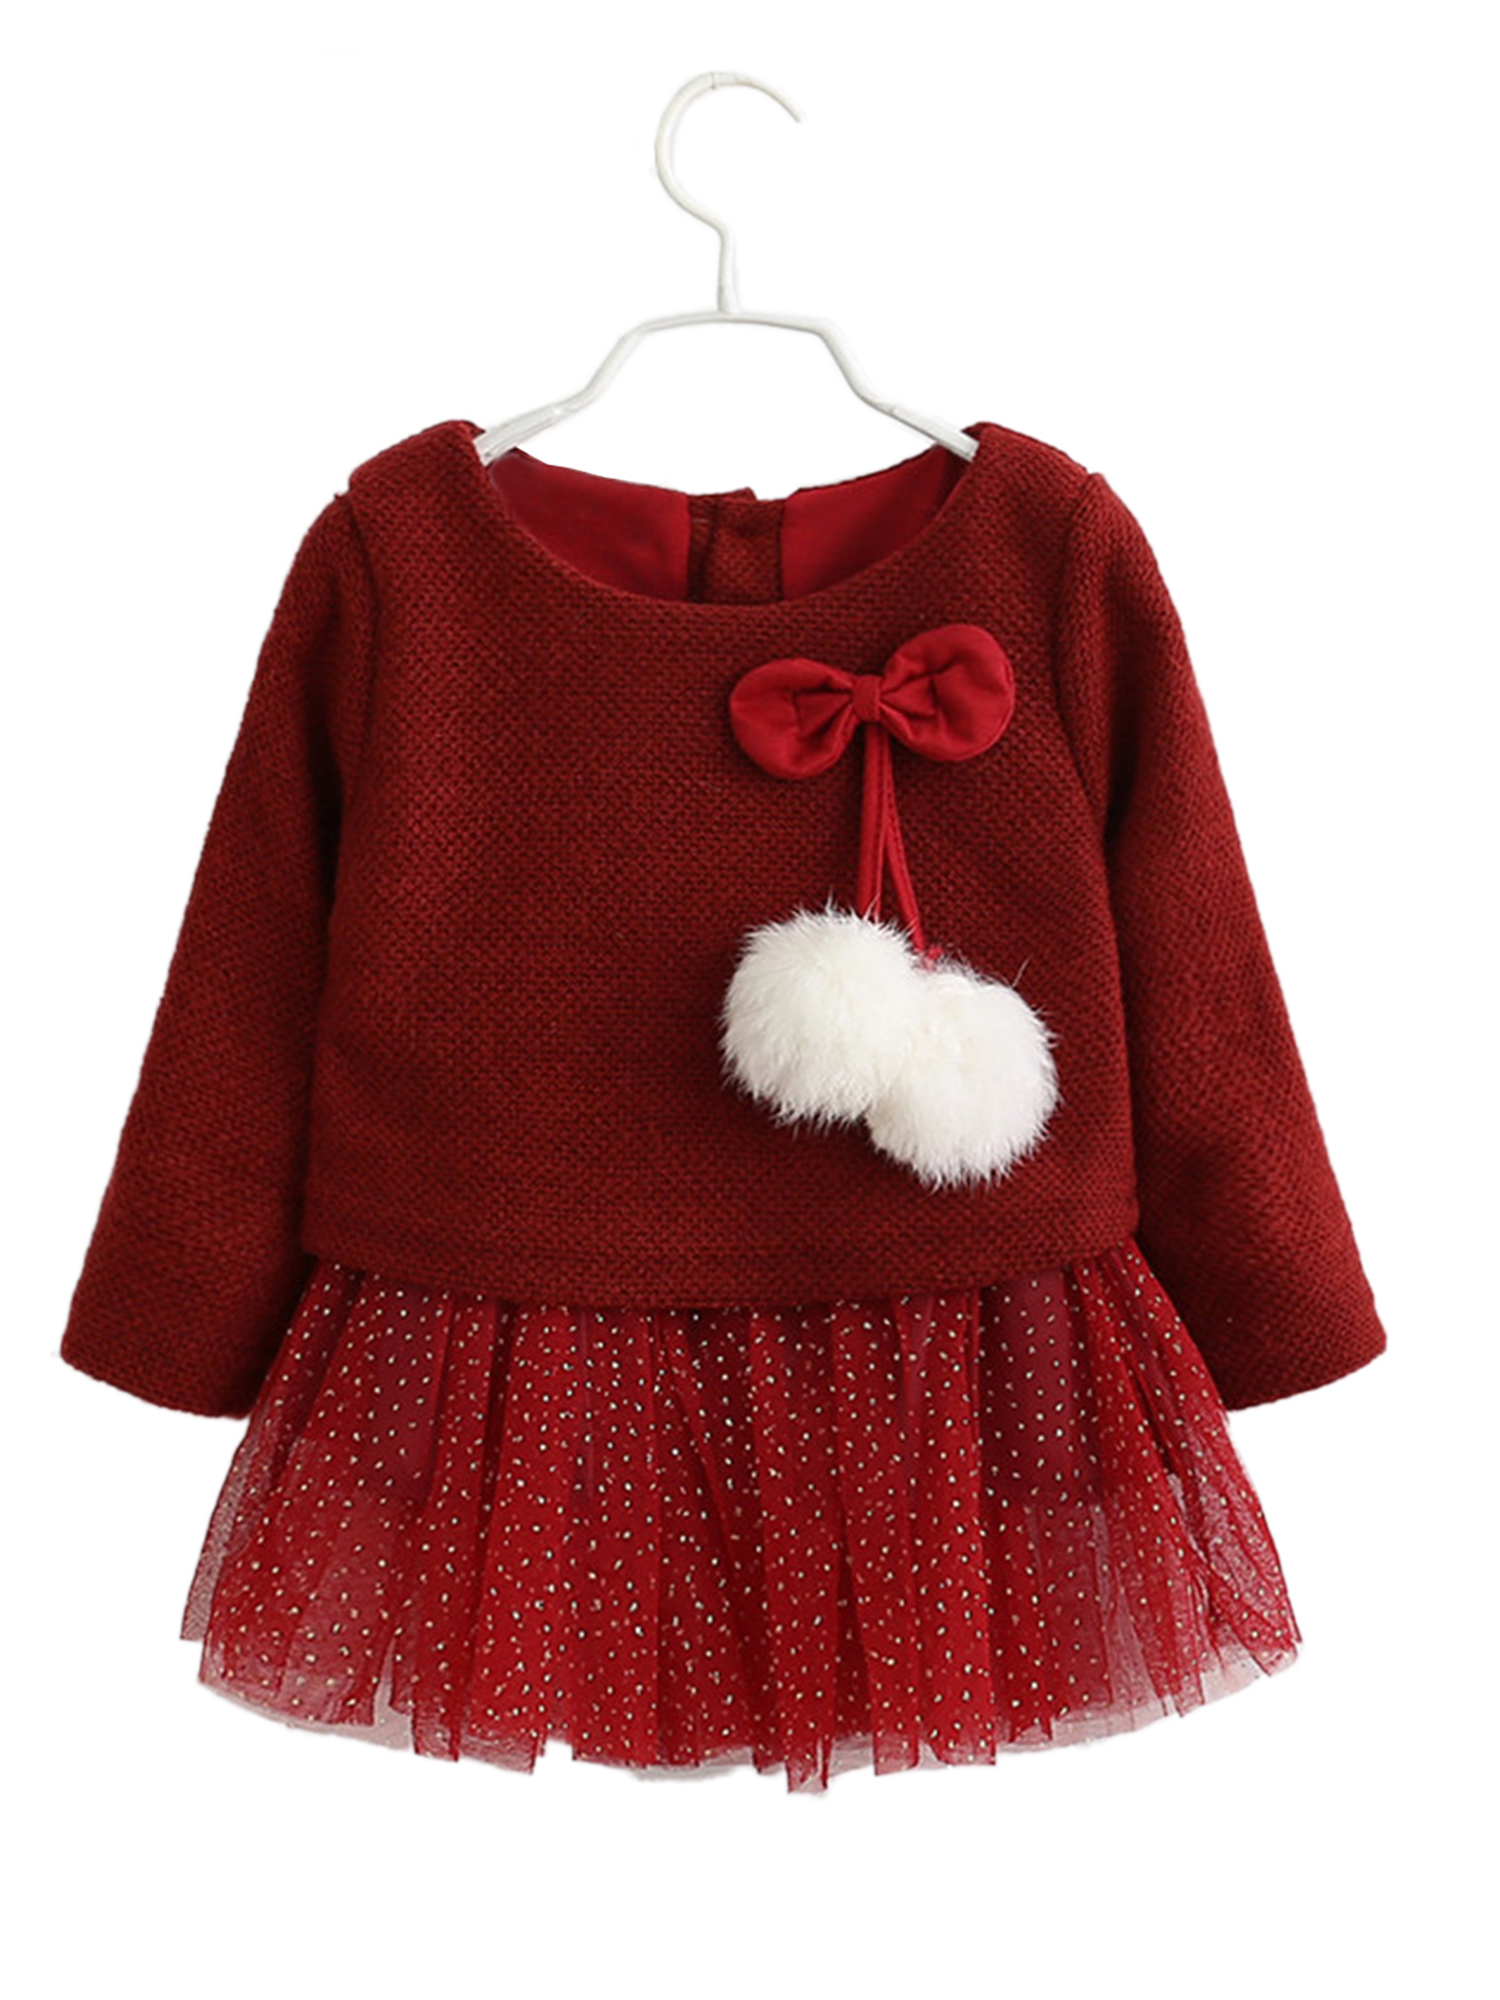 StylesILove Infant Baby Girl Knit Sweater with Gold Sequin Tutu Skirt (70/3-6 Months, Red)